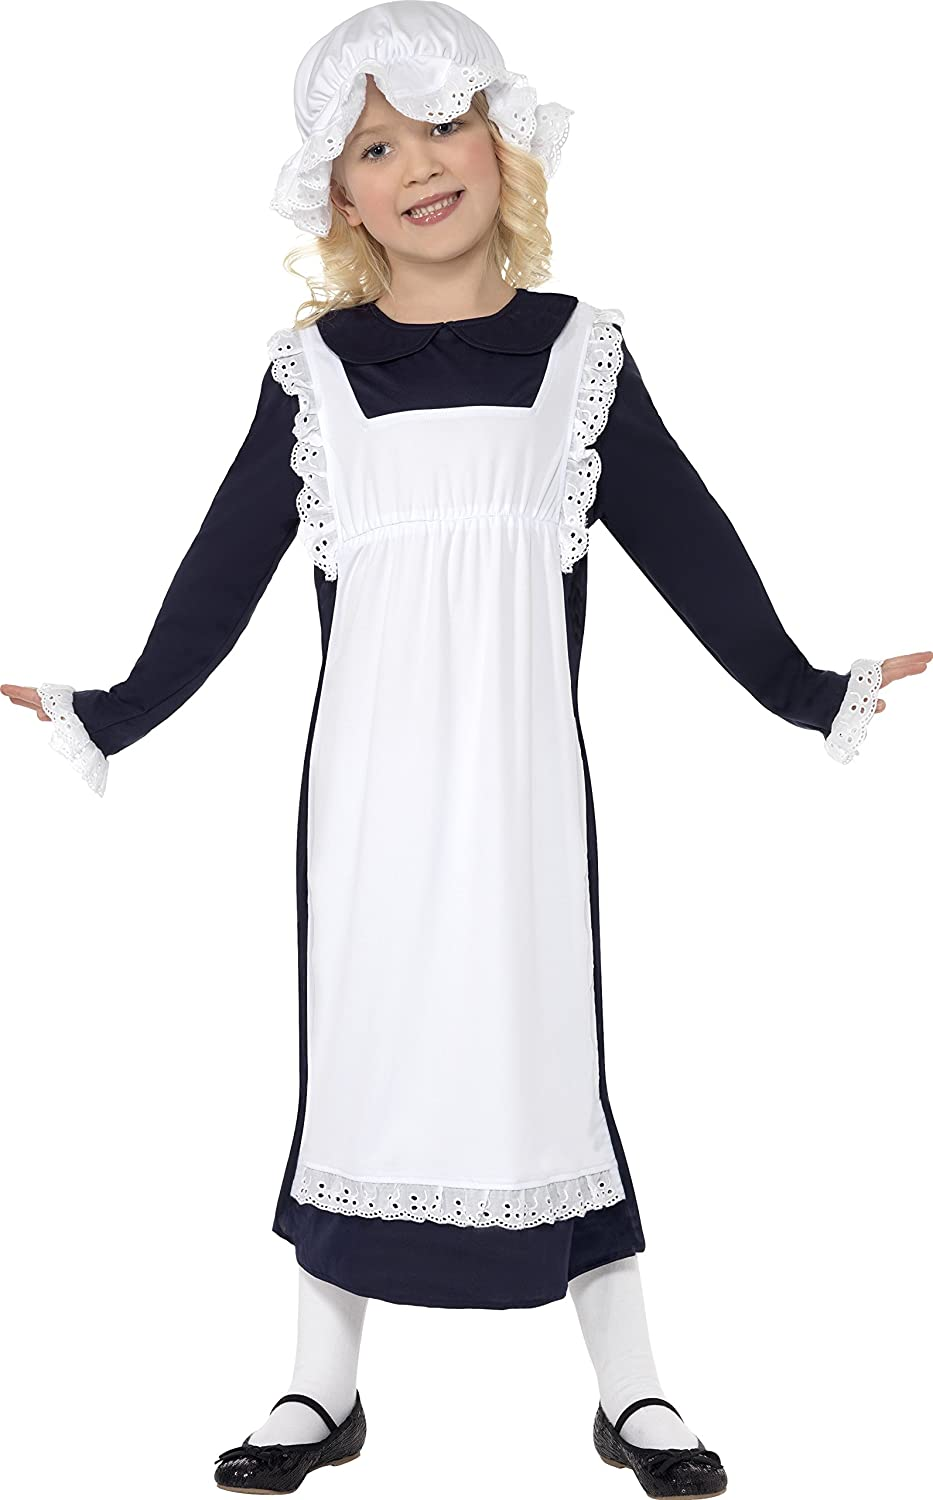 Victorian Kids Costumes & Shoes- Girls, Boys, Baby, Toddler Smiffys Victorian Poor Girl Fancy Dress Costume Girls (Old English) $29.27 AT vintagedancer.com